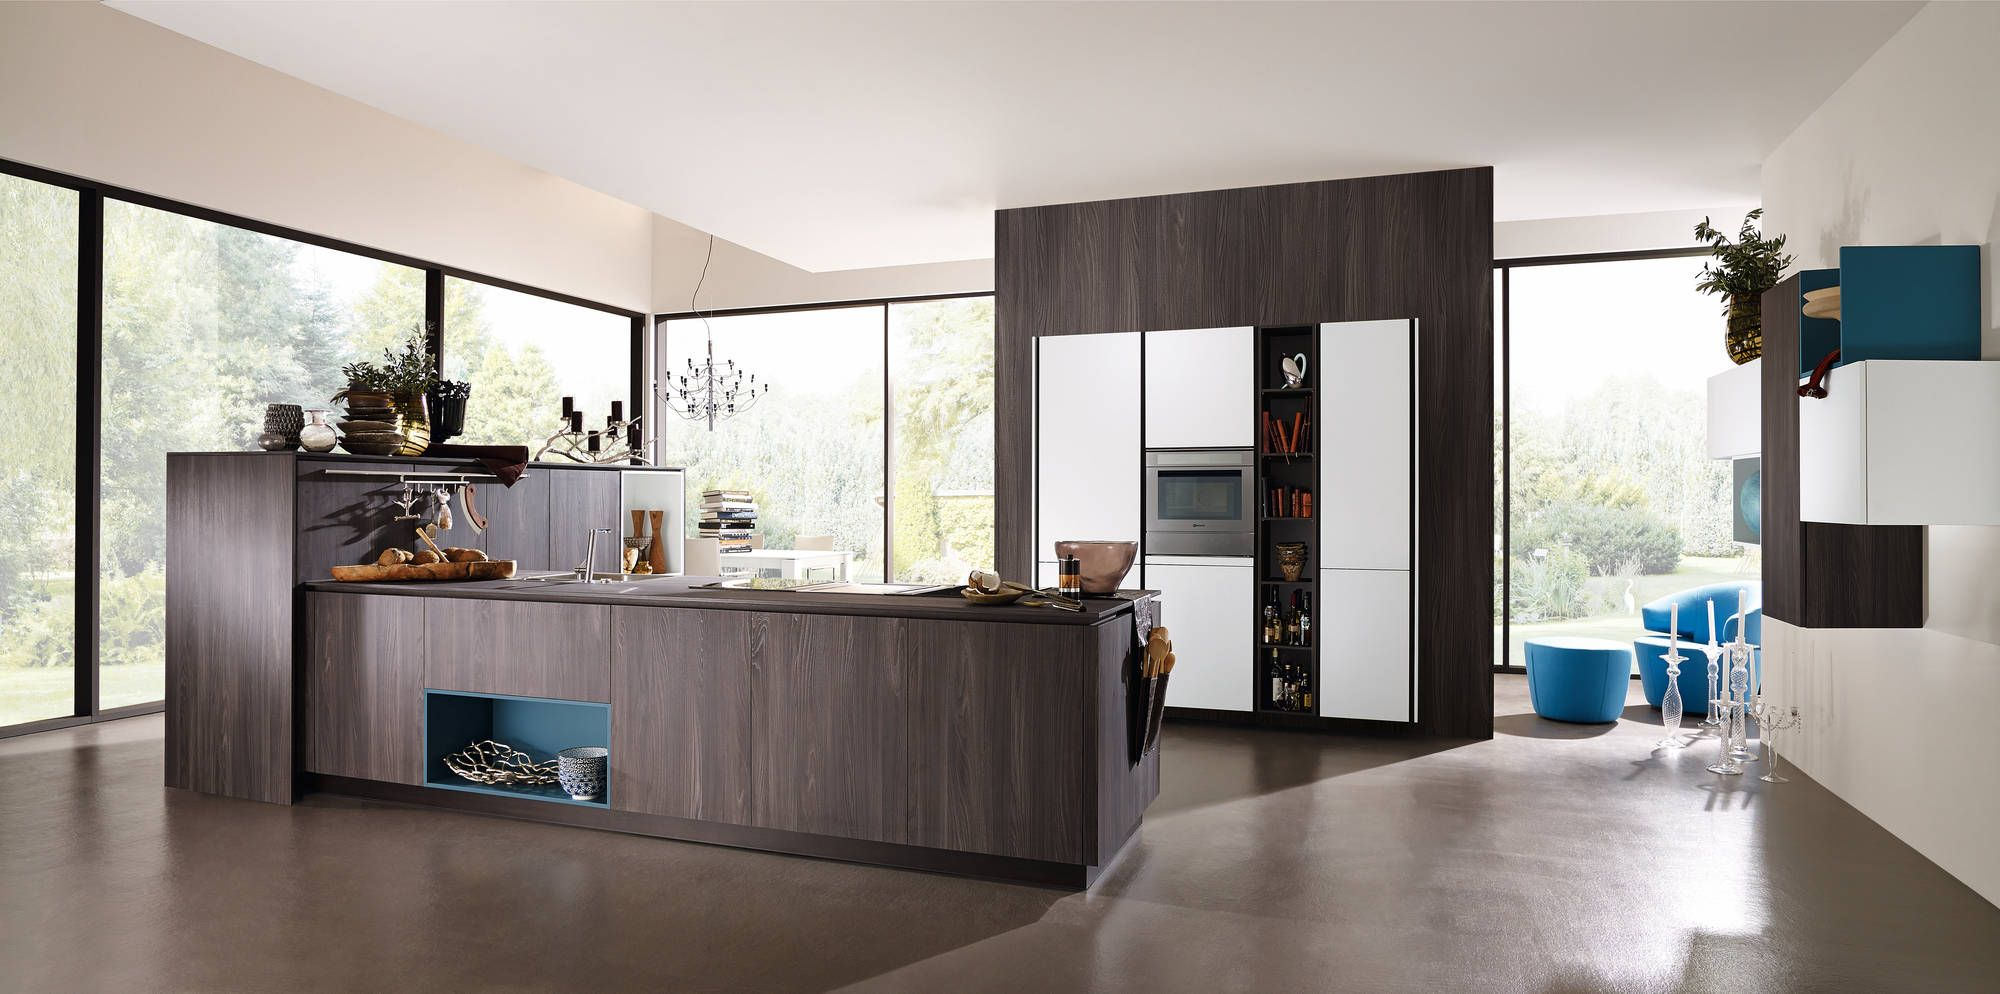 Küche Alno Alno New Modern Front In Caruba Kitchen Cabinet Line Called